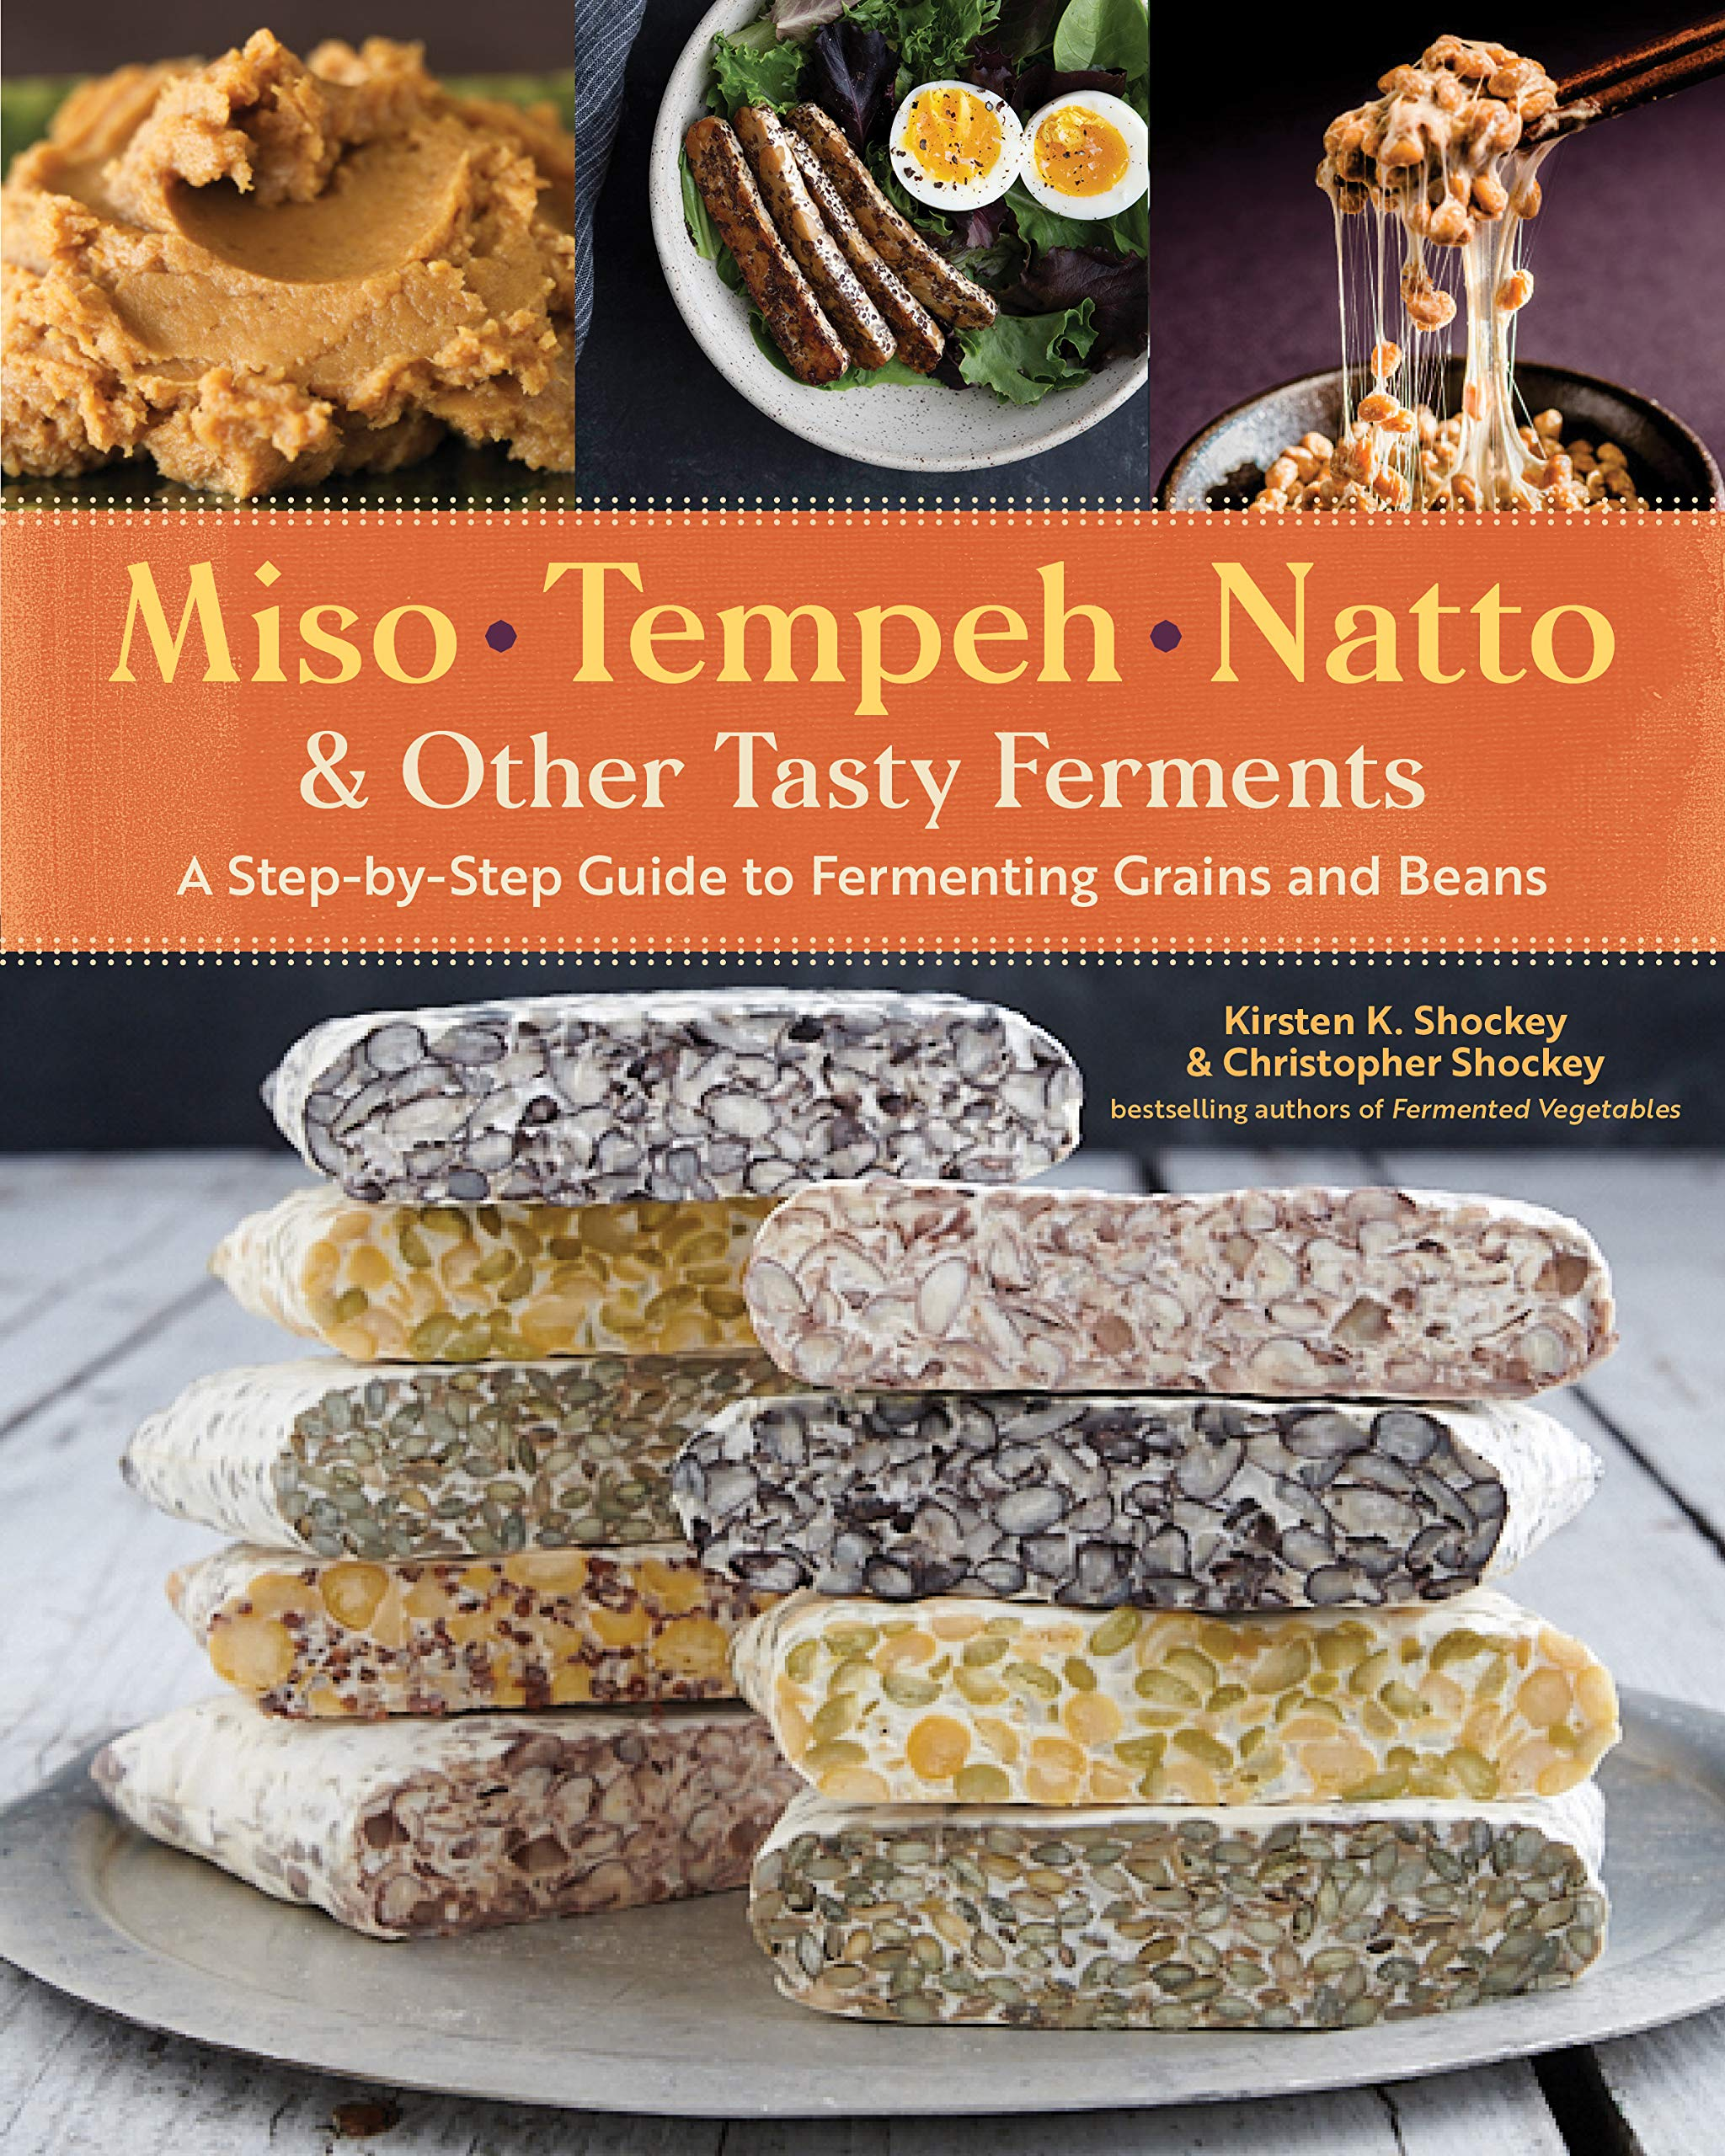 Image OfShockey, K: Miso, Tempeh, Natto And Other Tasty Ferments: A: A Step-By-Step Guide To Fermenting Grains And Beans